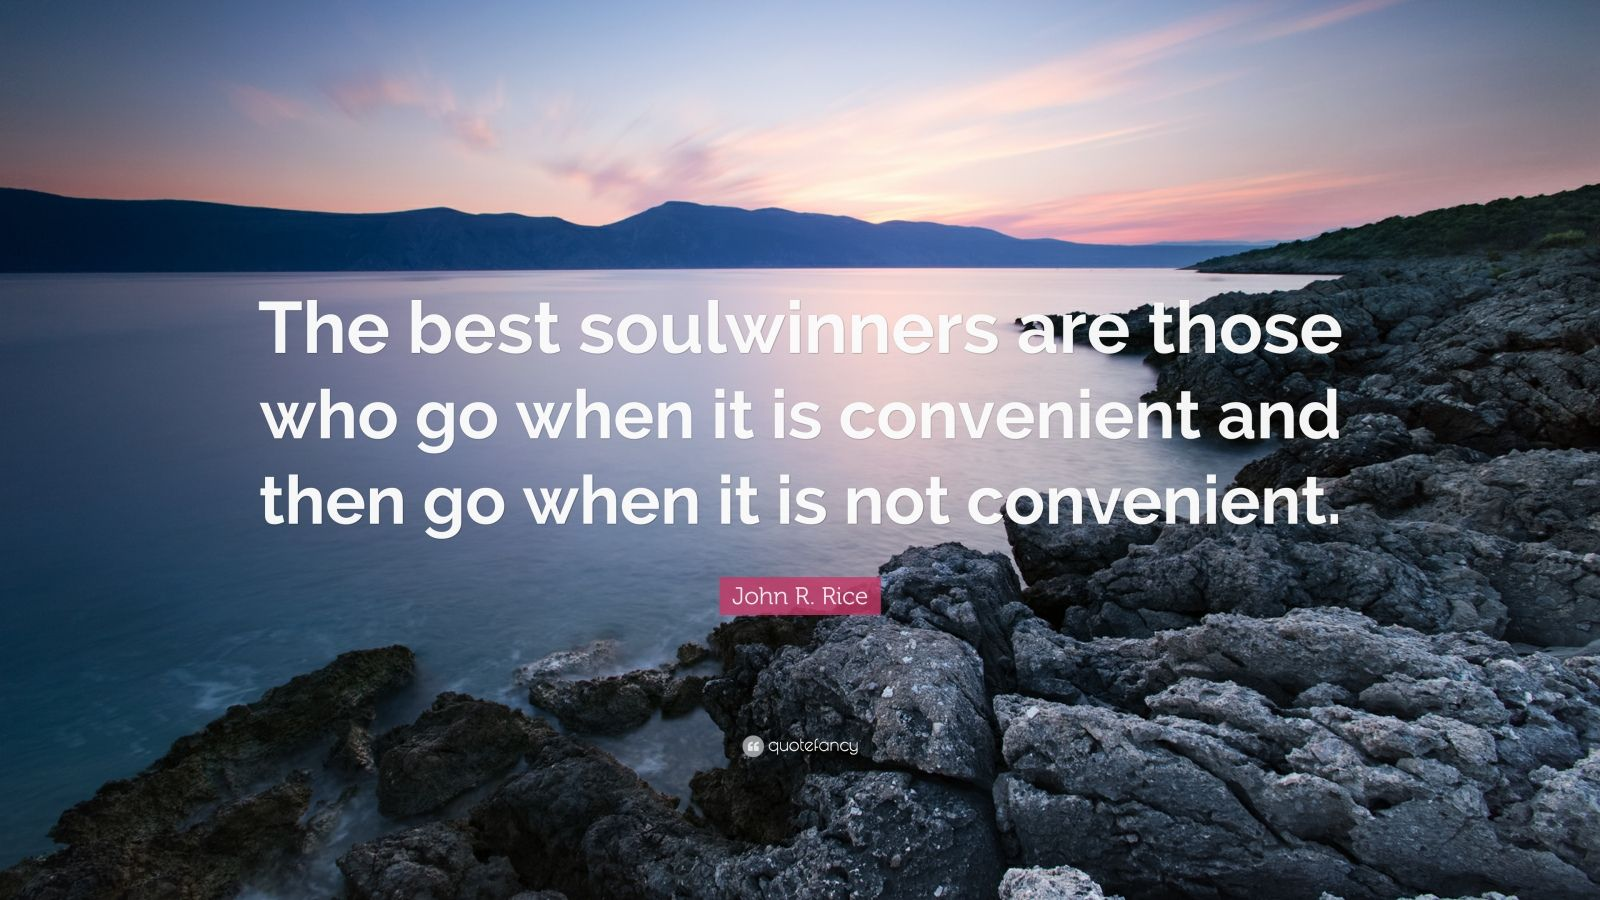 """John R. Rice Quote: """"The best soulwinners are those who go when it is convenient and then go when it is not convenient."""""""